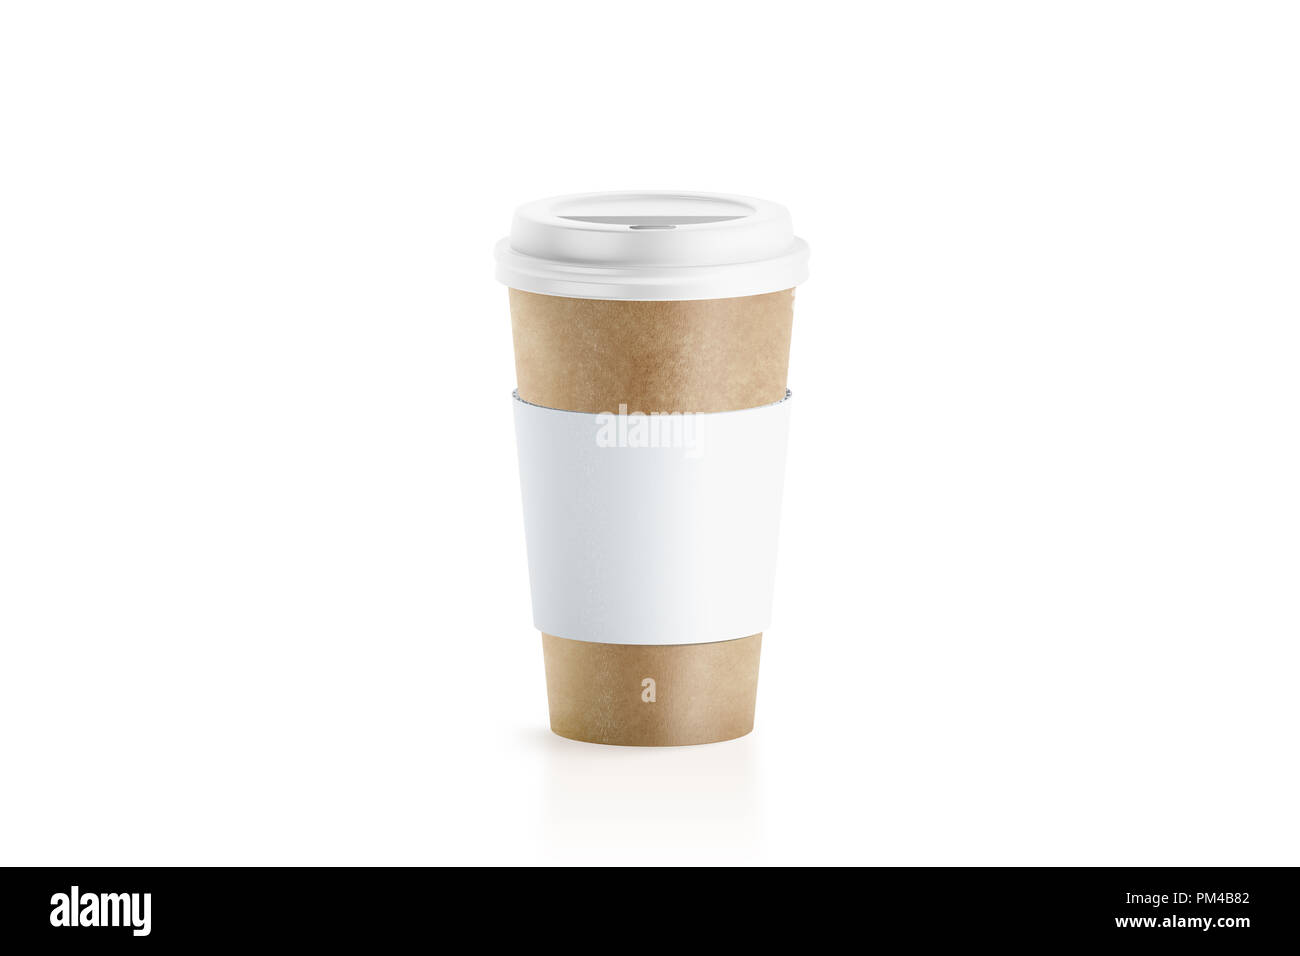 Blank craft paper cup with white sleeve holder mockup, 3d rendering. Empty coffe container with zarfs mock up. Clear disposable mug for cofe or tea. Take out pack with clutches isolated, logo branding - Stock Image